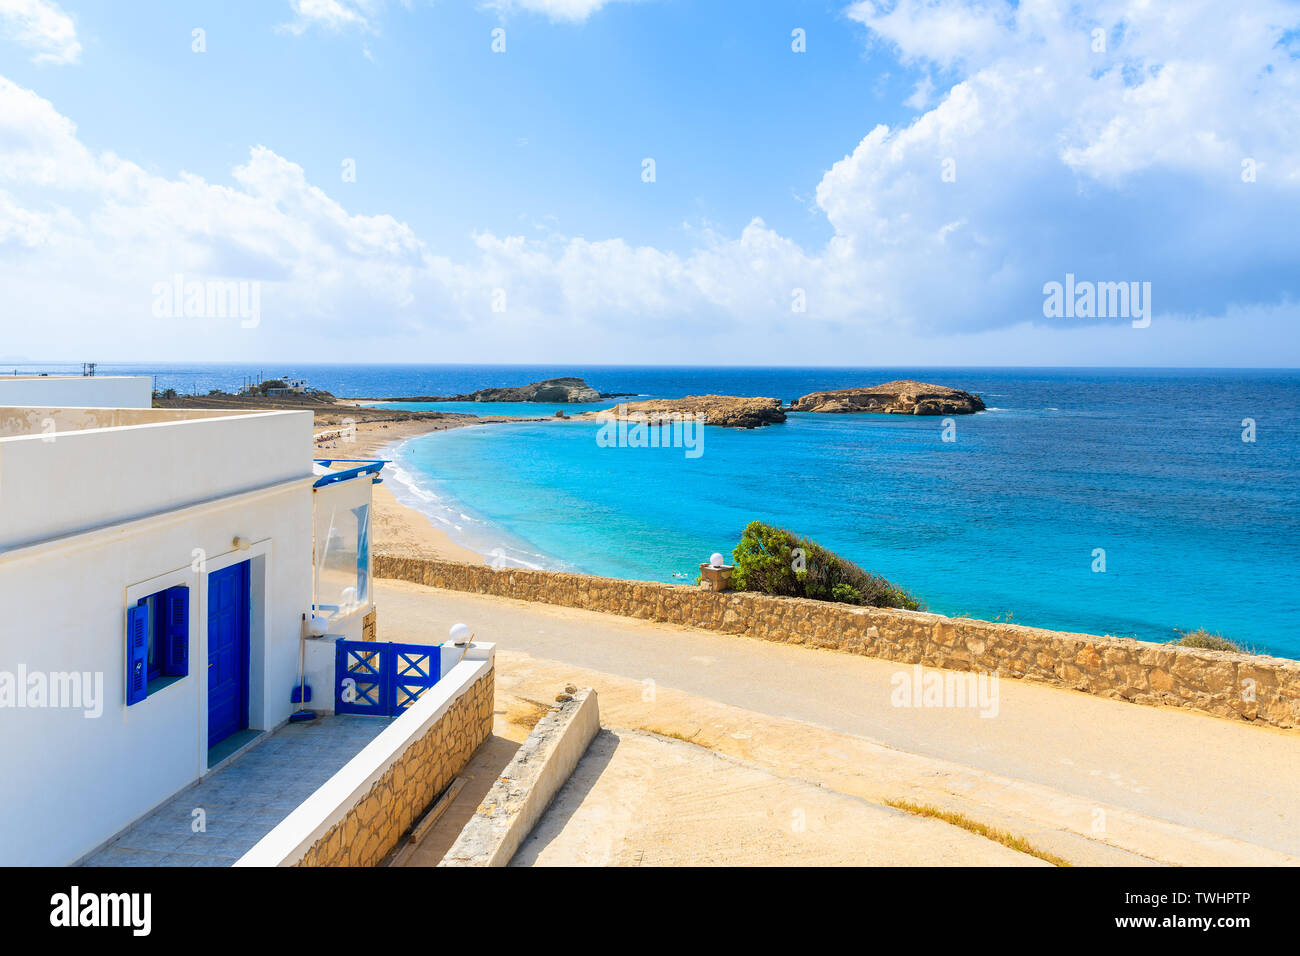 Typical Greek white and blue color house near beach in Lefkos village on Karpathos island, Greece Stock Photo